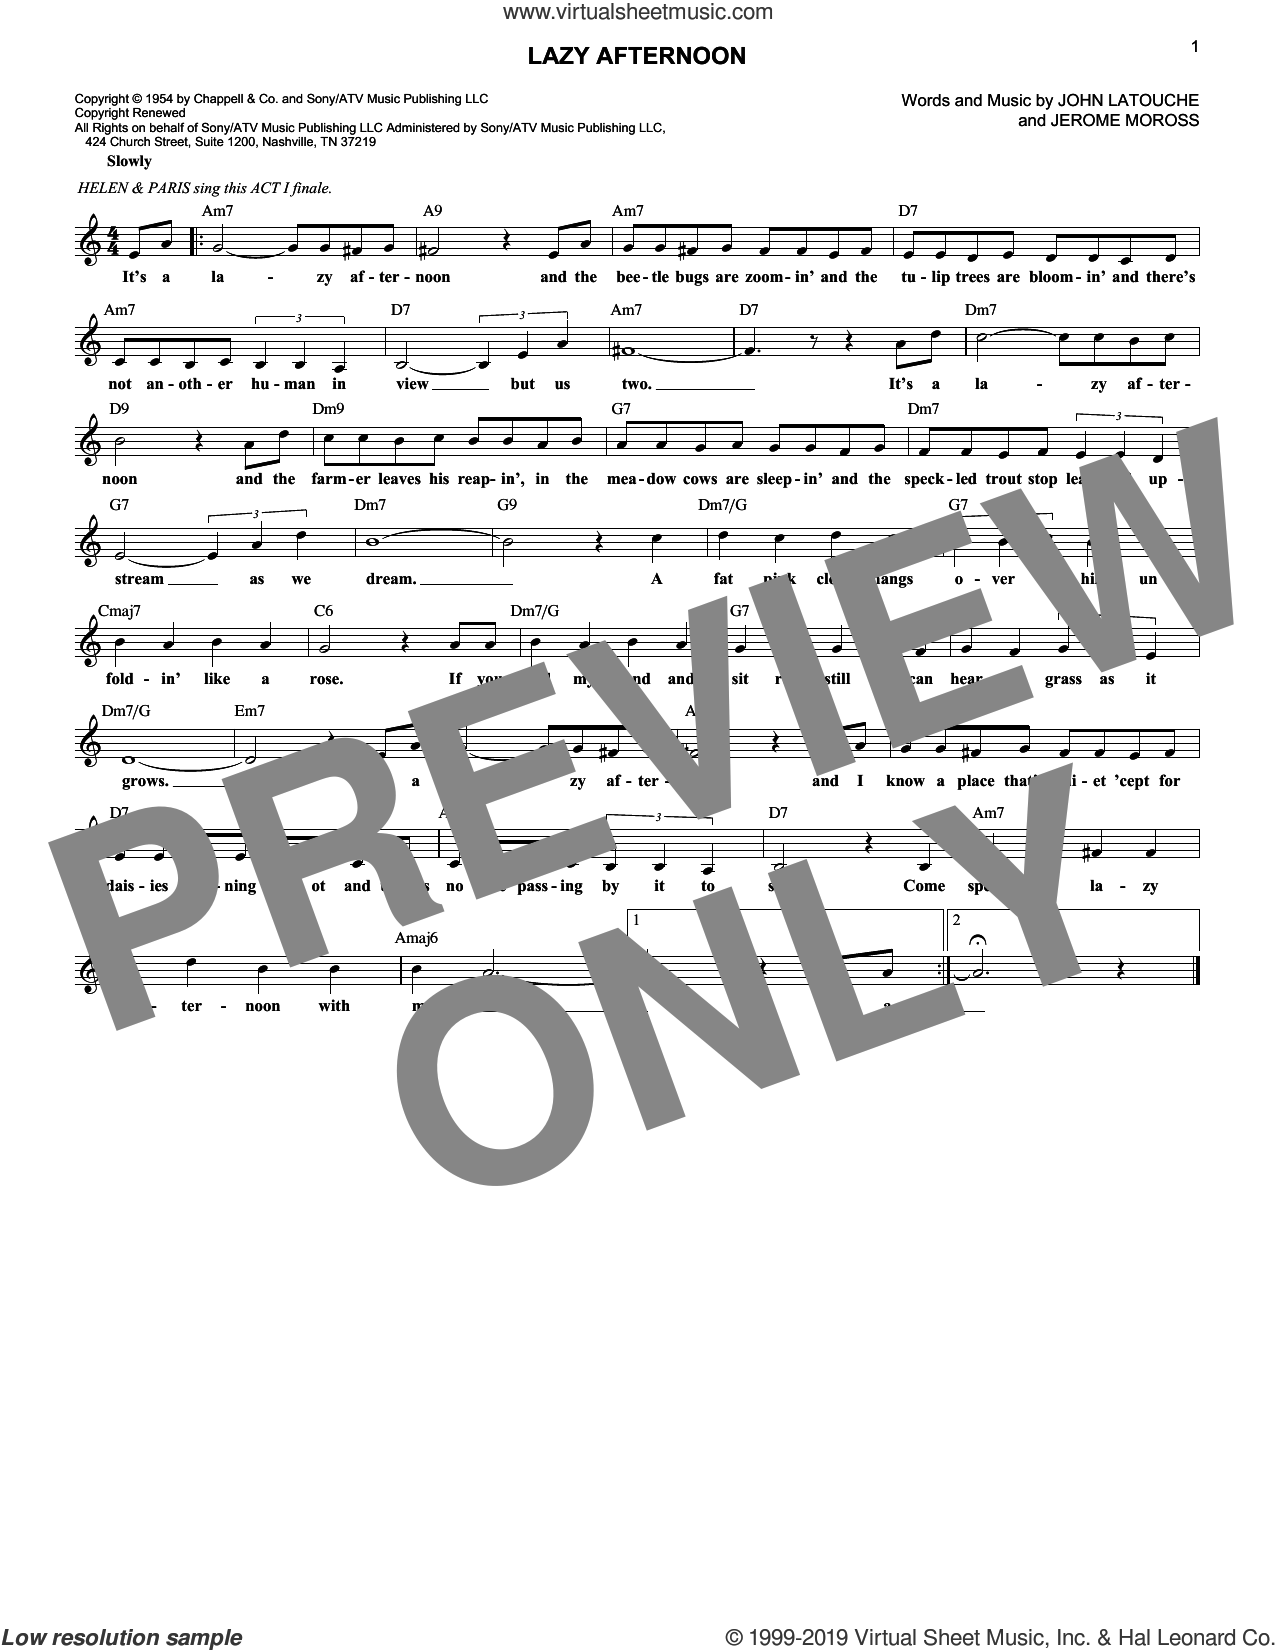 Lazy Afternoon sheet music for voice and other instruments (fake book) by Barbra Streisand, Jerome Moross and John Latouche, intermediate skill level